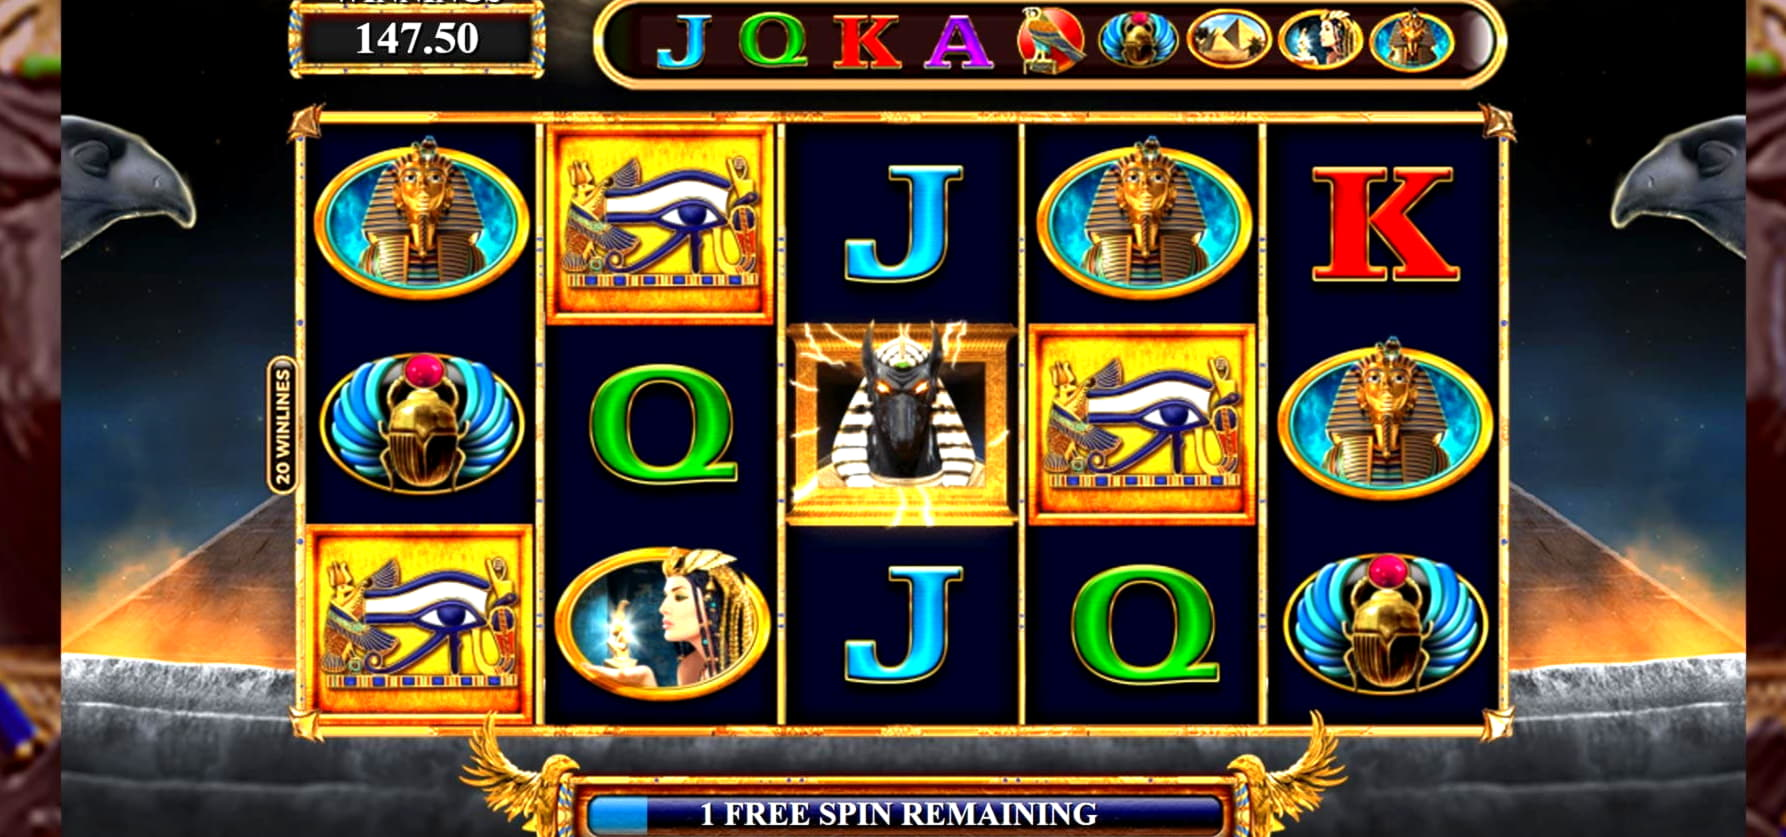 22 Free spins casino at Planet 7 Casino